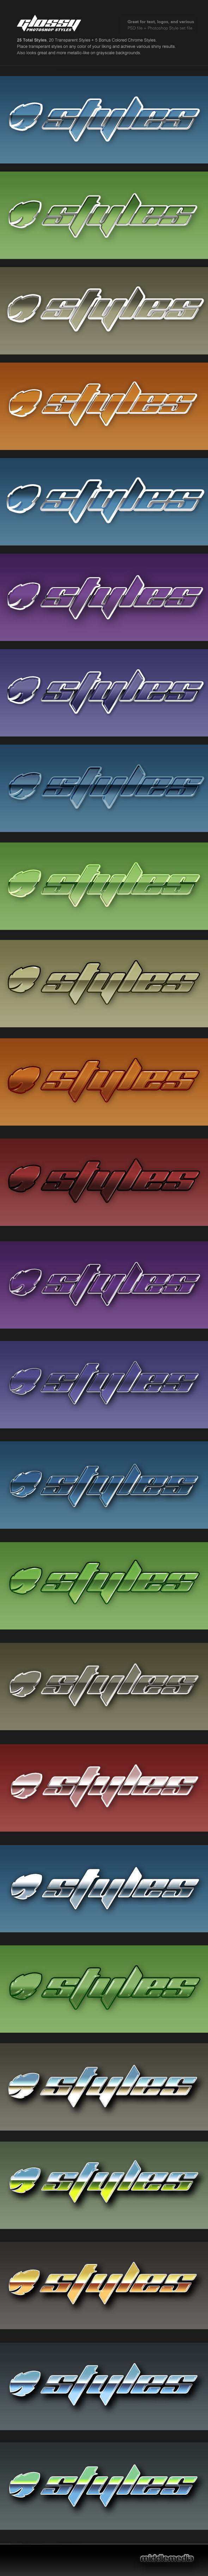 Transperant Glossy Photoshop Styles - Text Effects Styles